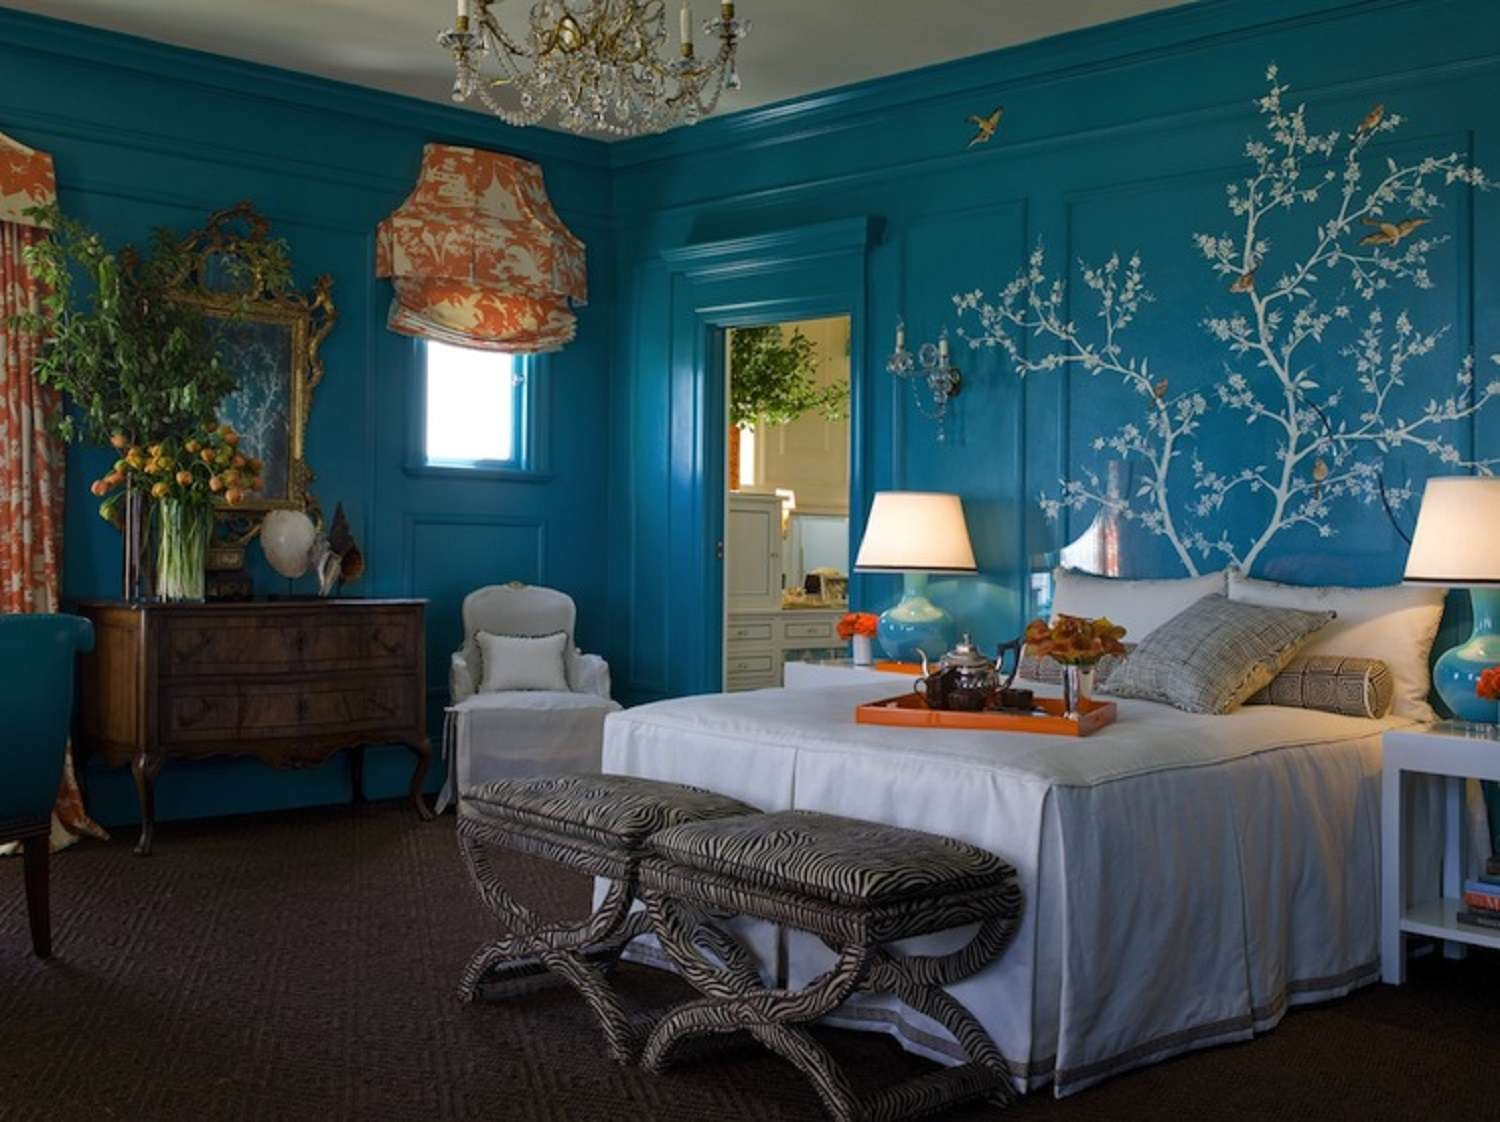 Tiffany Blue Bedroom Ideas Luxury 25 Stunning Blue Bedroom Ideas